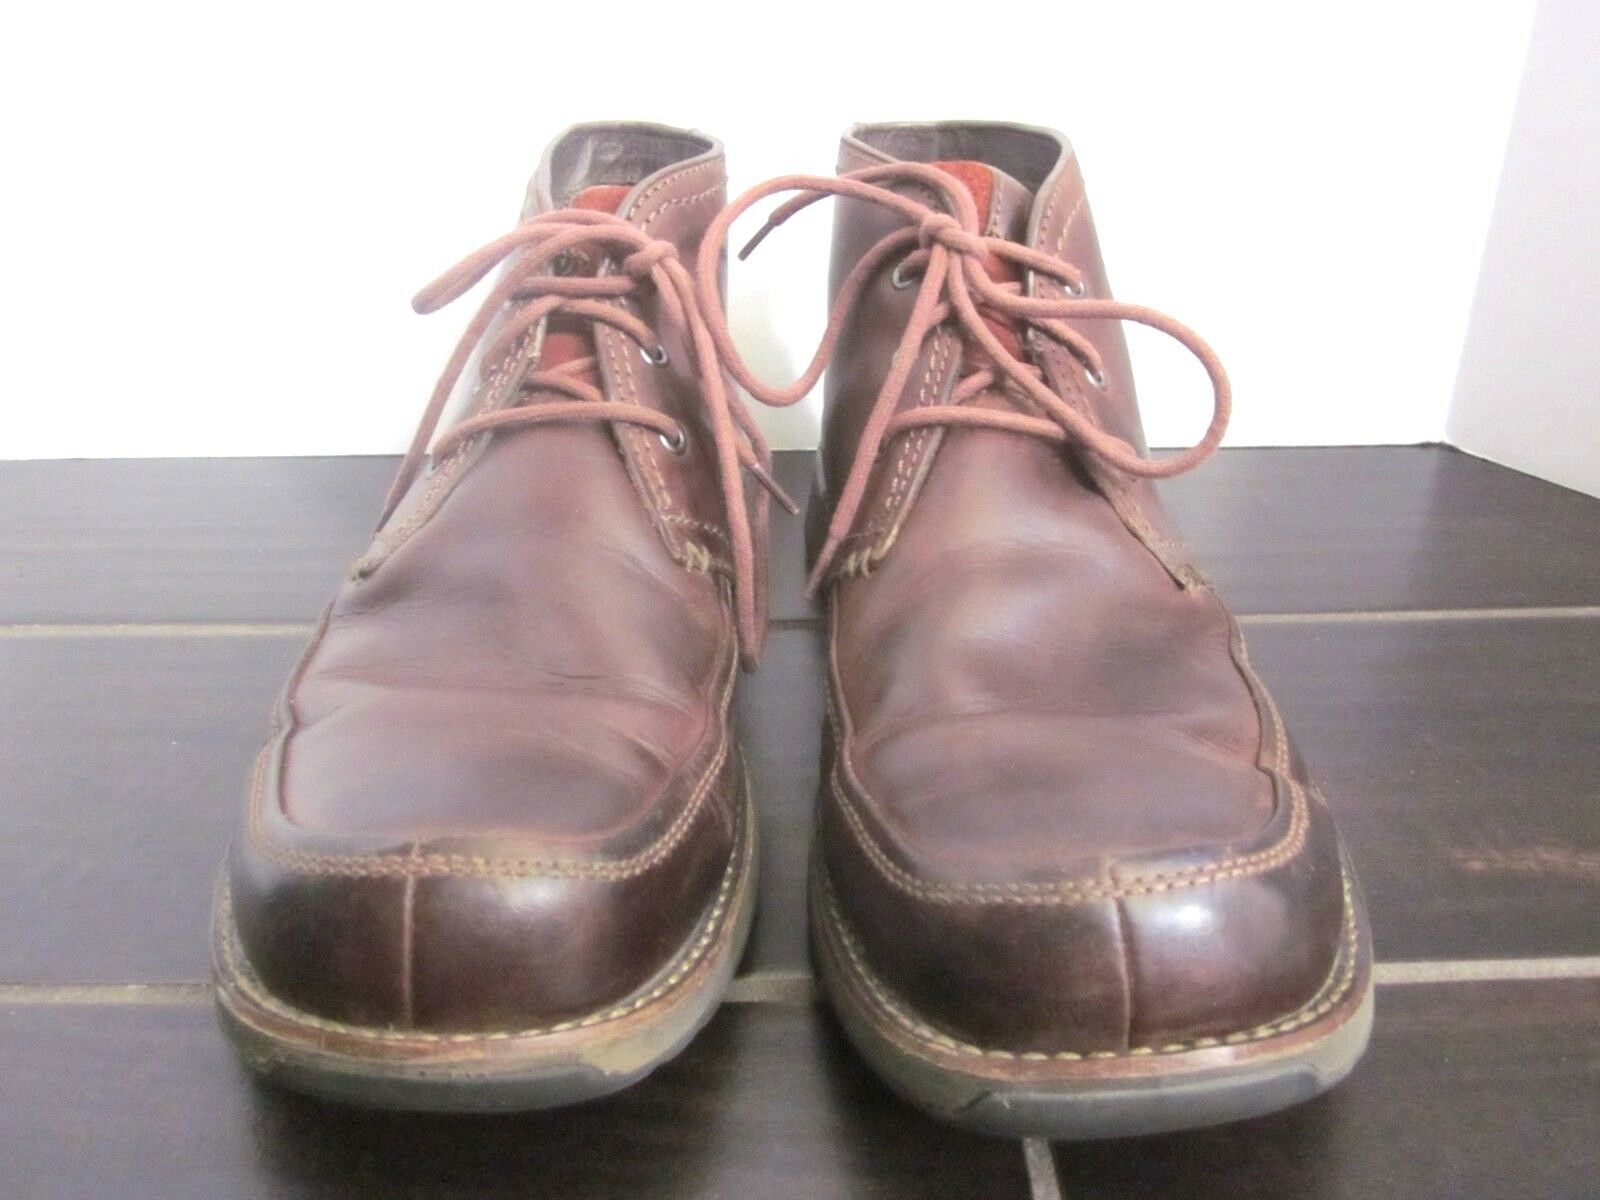 Merrell Realm Chukka Ankle Boot Cinnamon Leather Brown shoes Men 11.5 (C04)